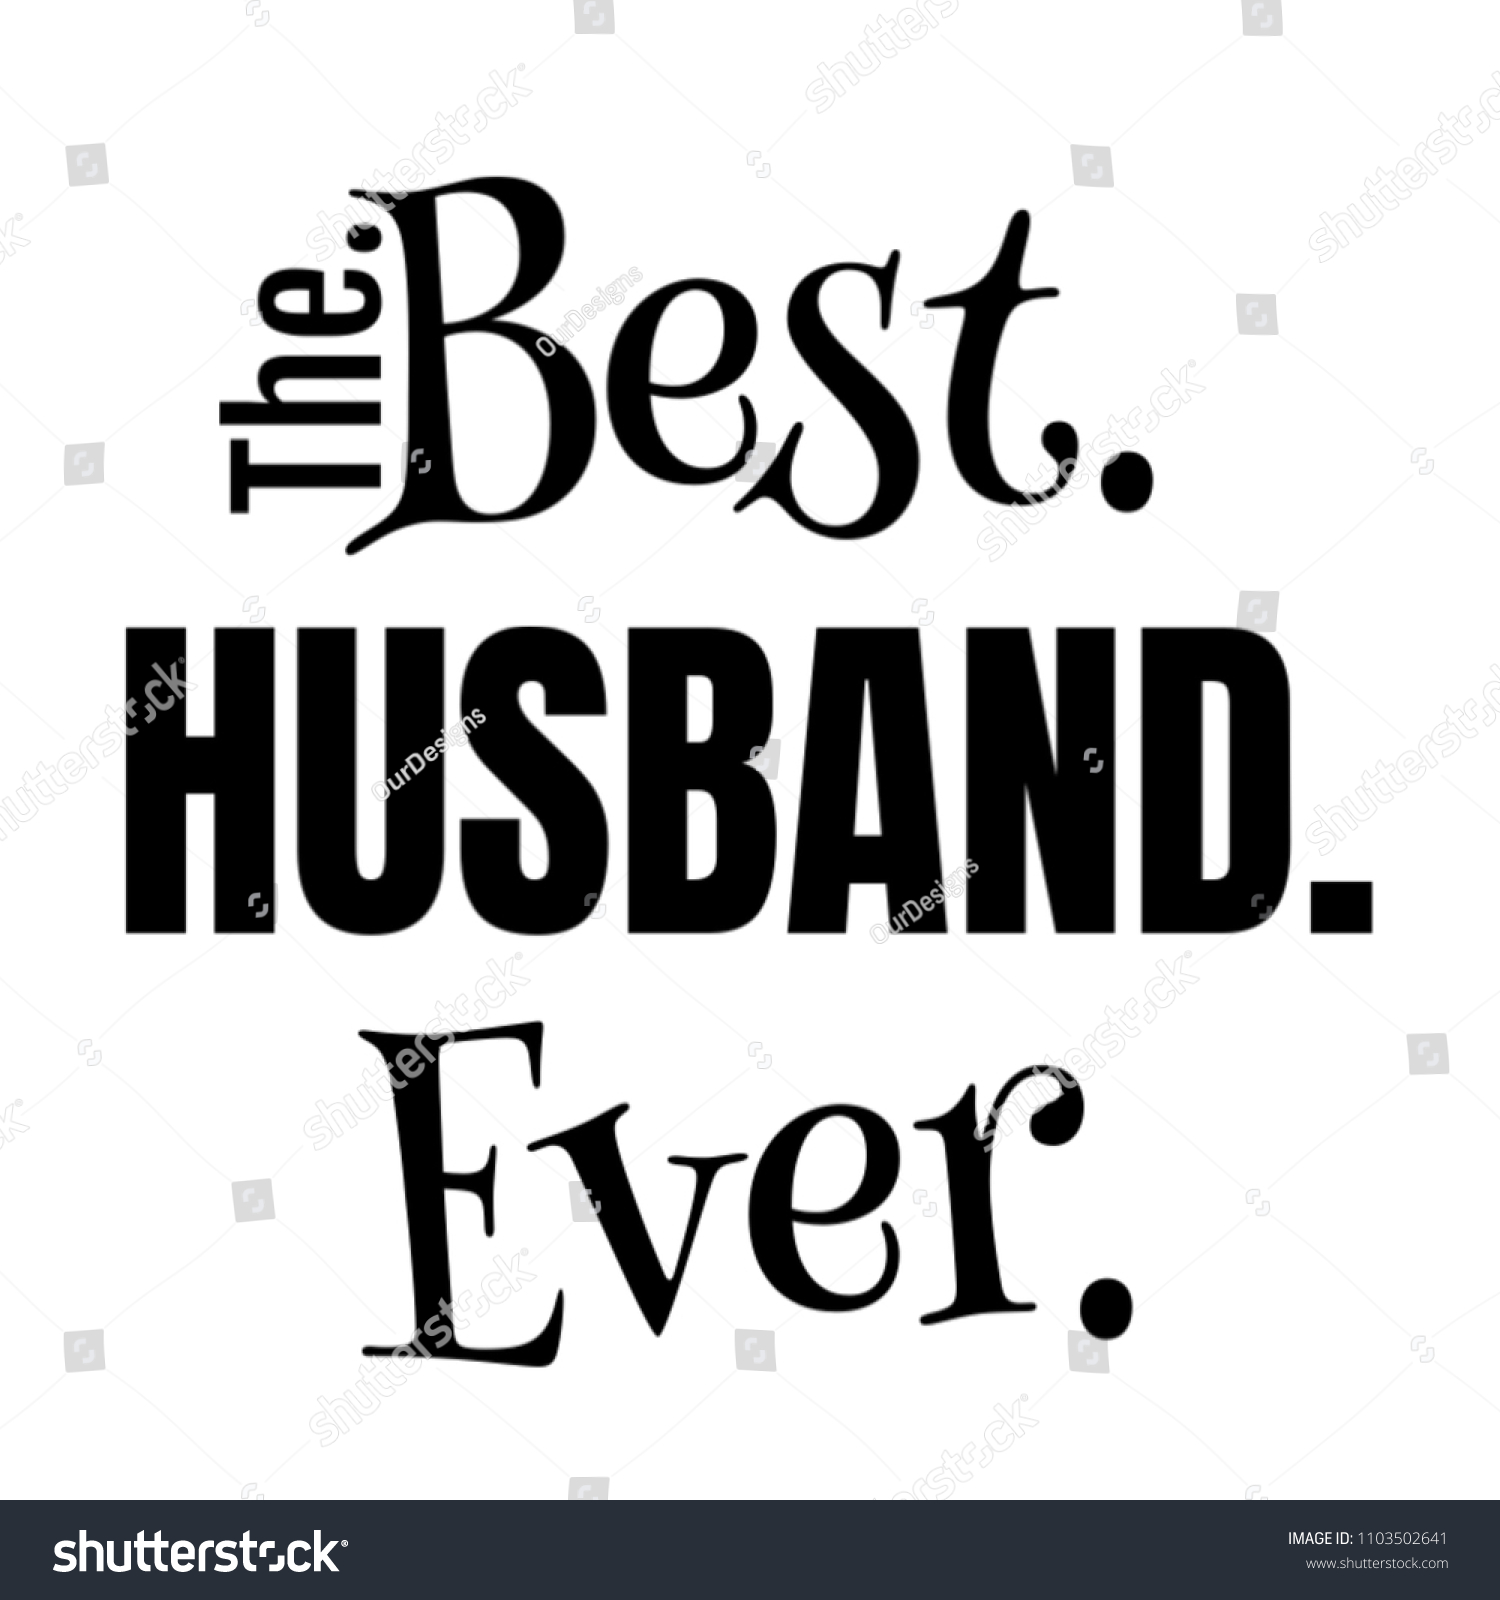 Best Husband Ever Gifts Fathers Day Stock Illustration 1103502641 ...